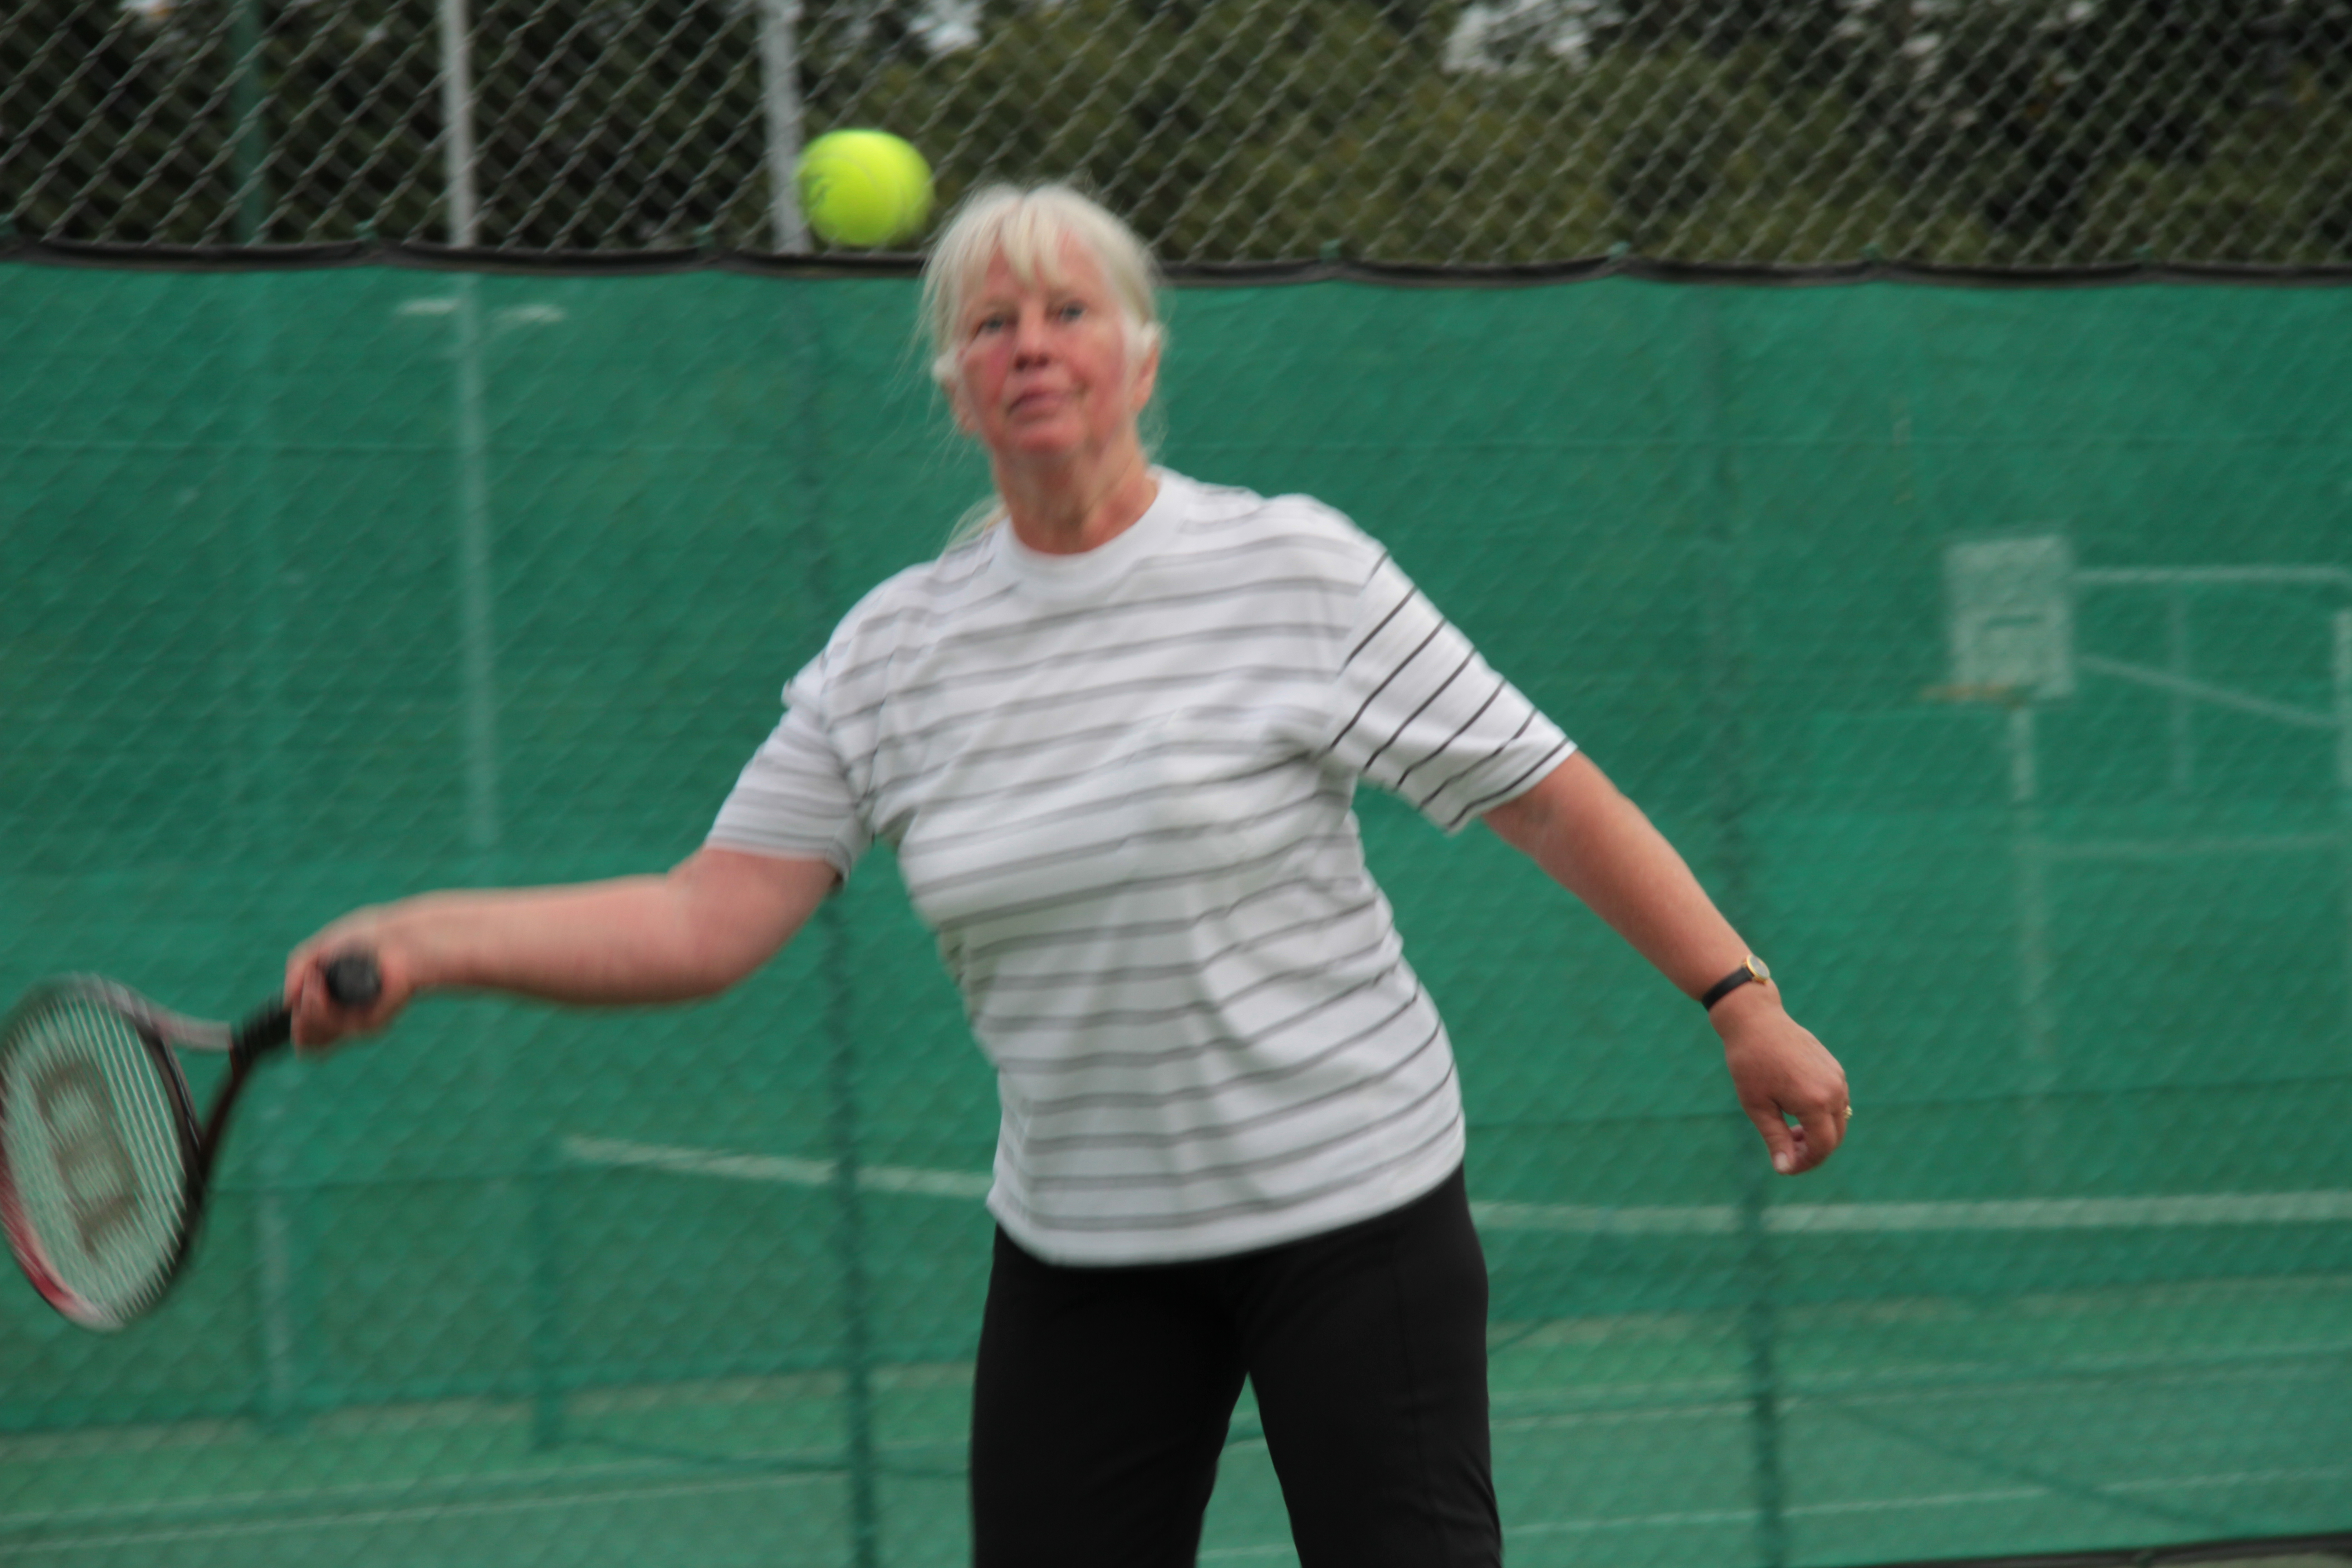 Liz plays a forehand